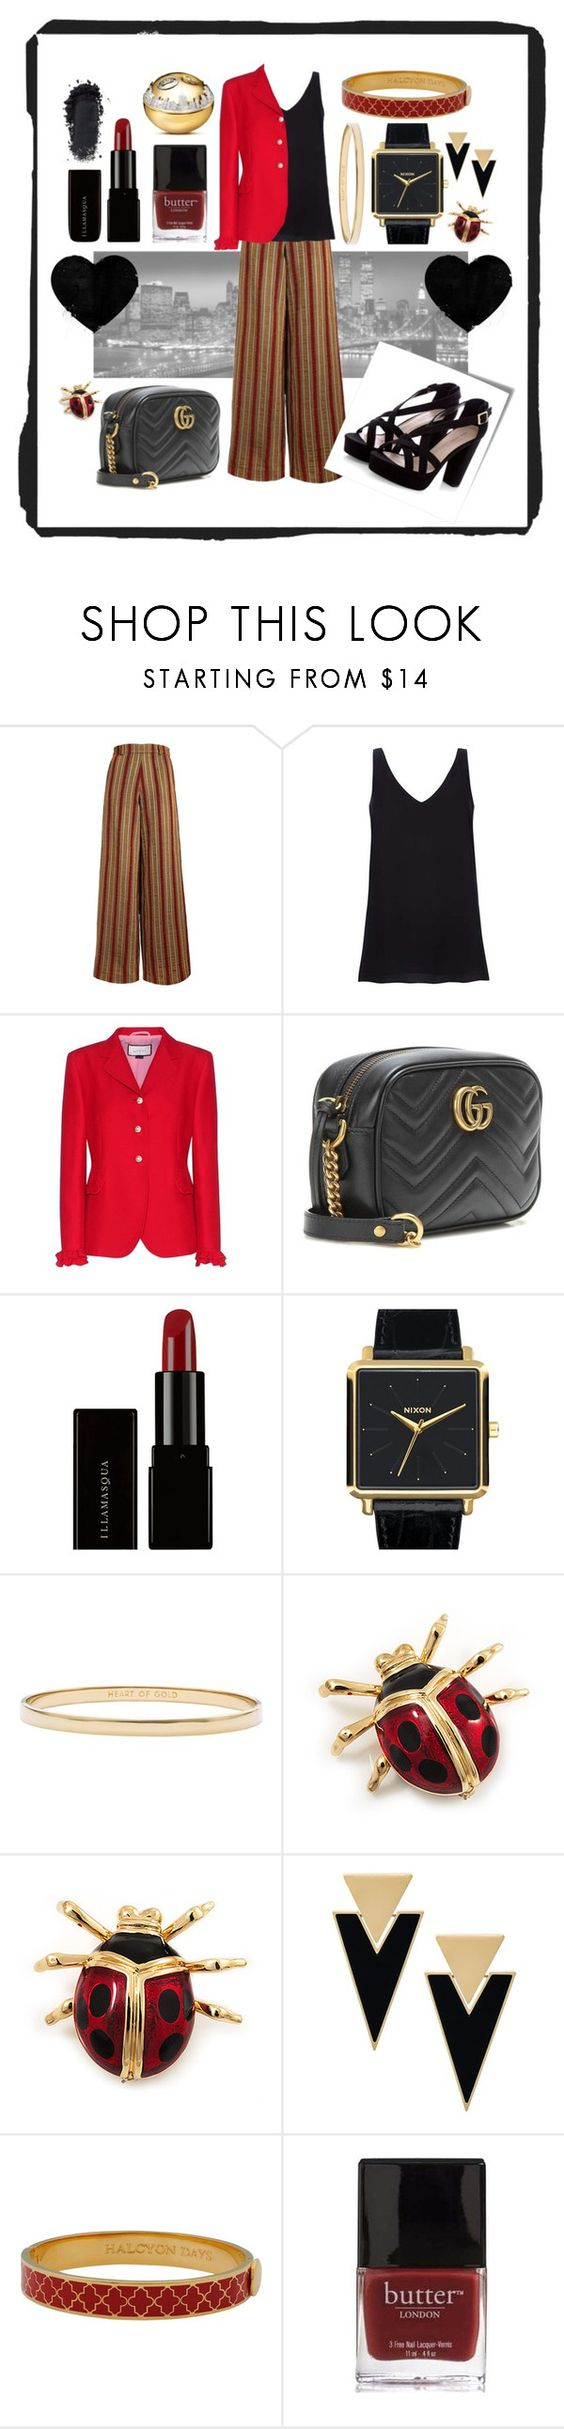 """""""Feelin' Good"""" by brightlights29 ❤ liked on Polyvore featuring The Bee's Sneeze, Gucci, Illamasqua, Nixon, Kate Spade, Post-It, Yves Saint Laurent, Halcyon Days, DKNY and Butter London"""